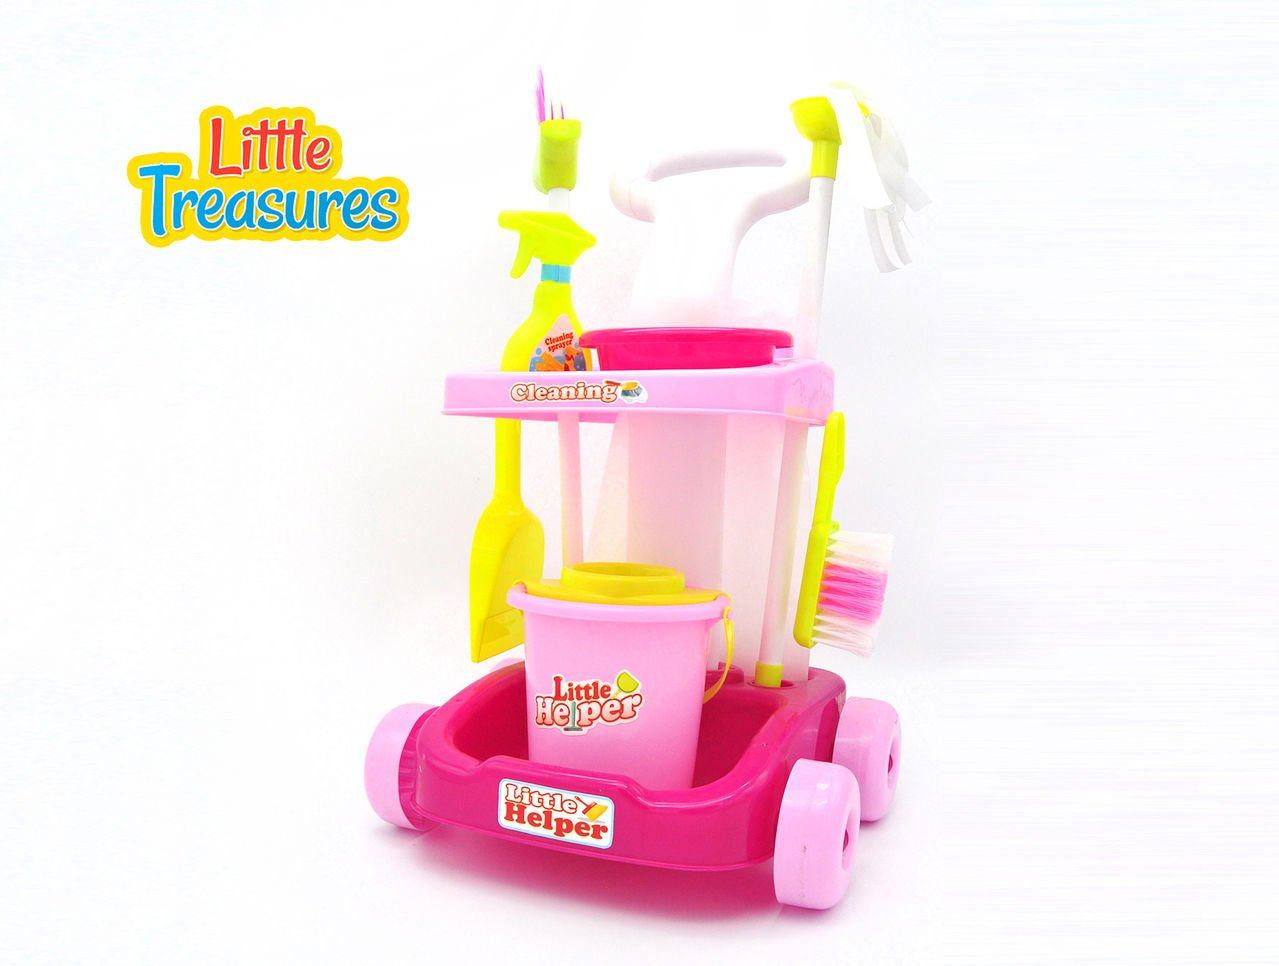 Little Helper cleaning play set from Little Treasures – Complete with cleaning-cart, mop, bucket, broom, cleaning sprayer, soap, hand-broom, dustpan, and tub –play set toy for children